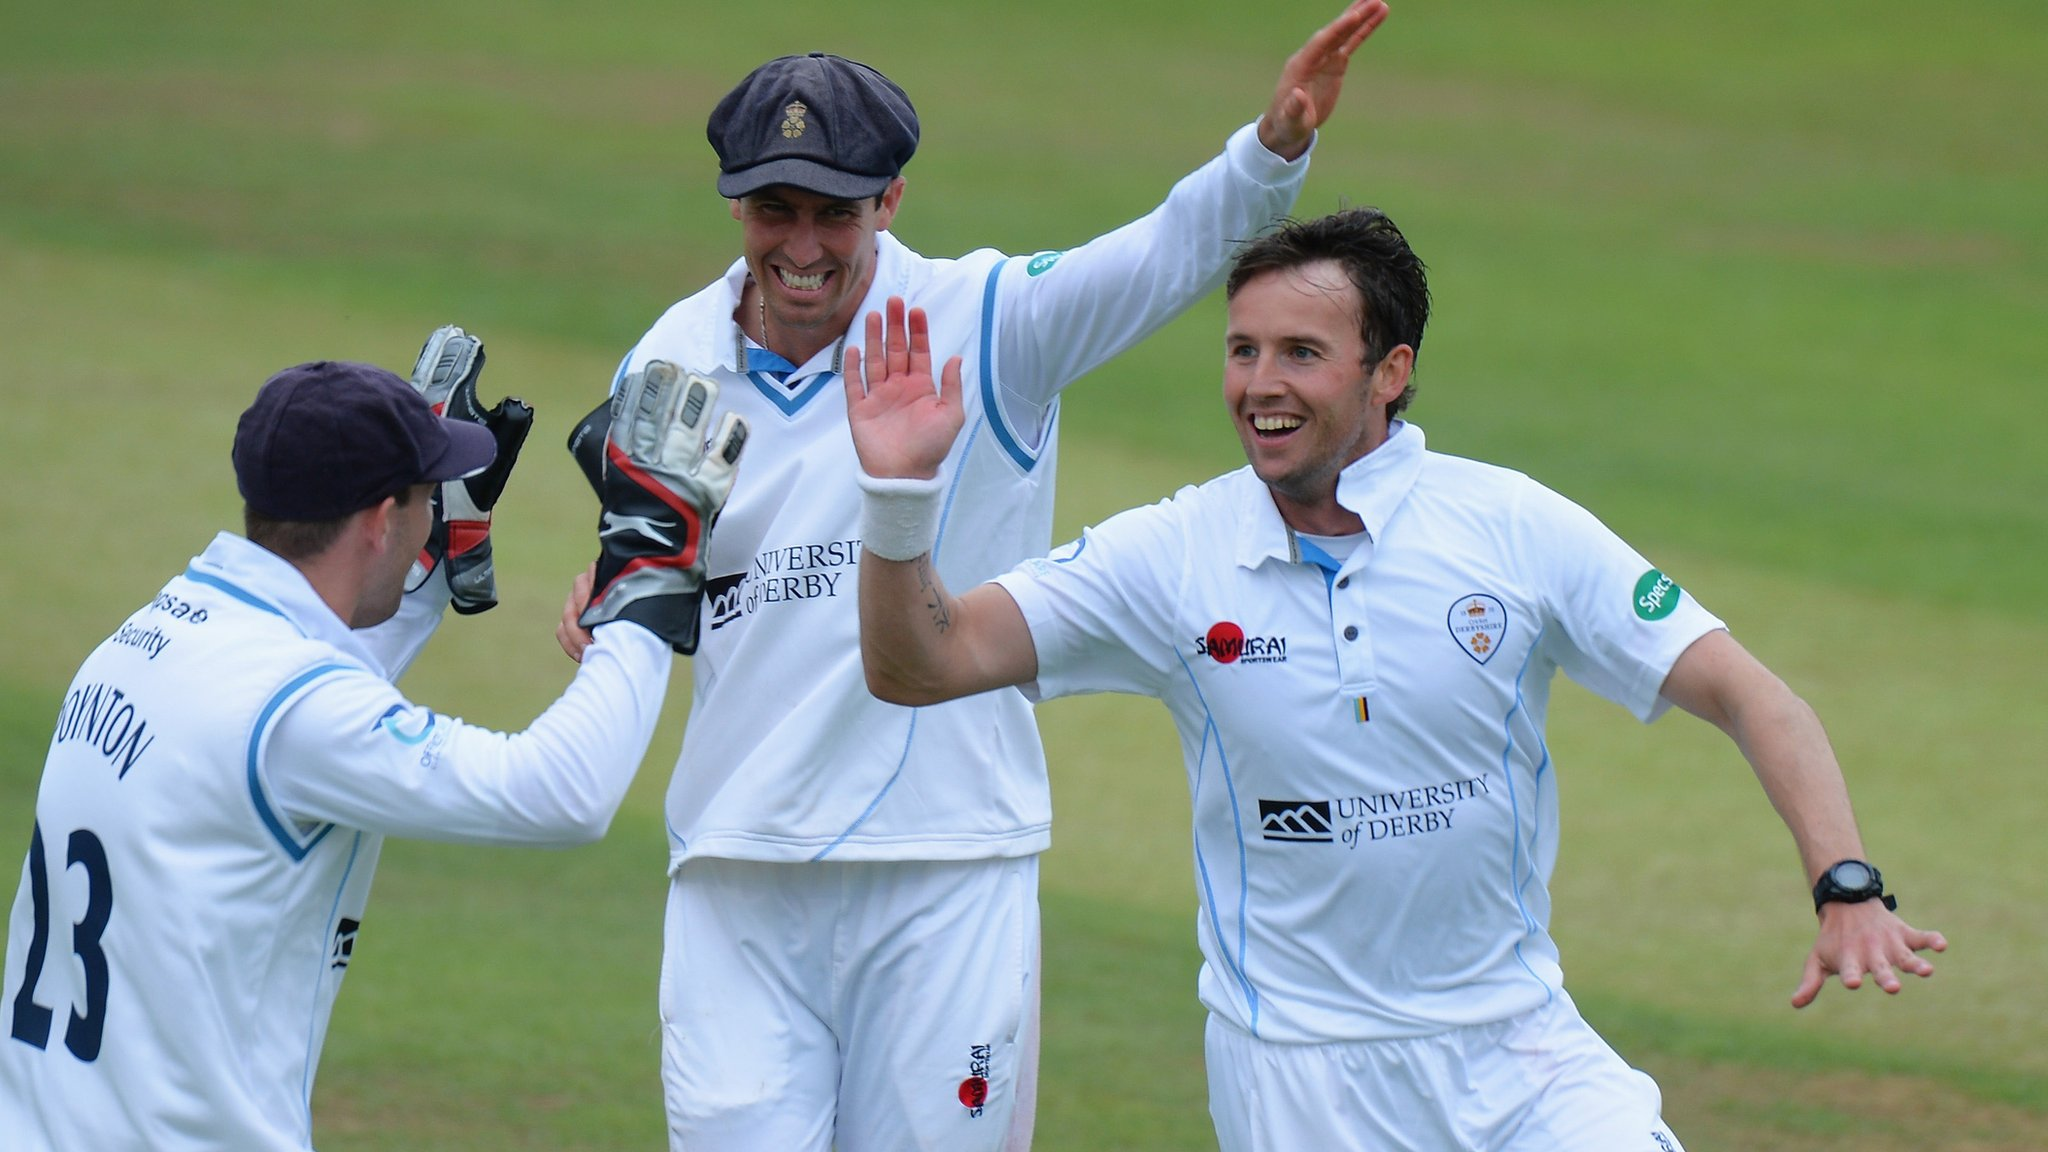 County Championship: Glamorgan struggle against Derbyshire despite winning toss